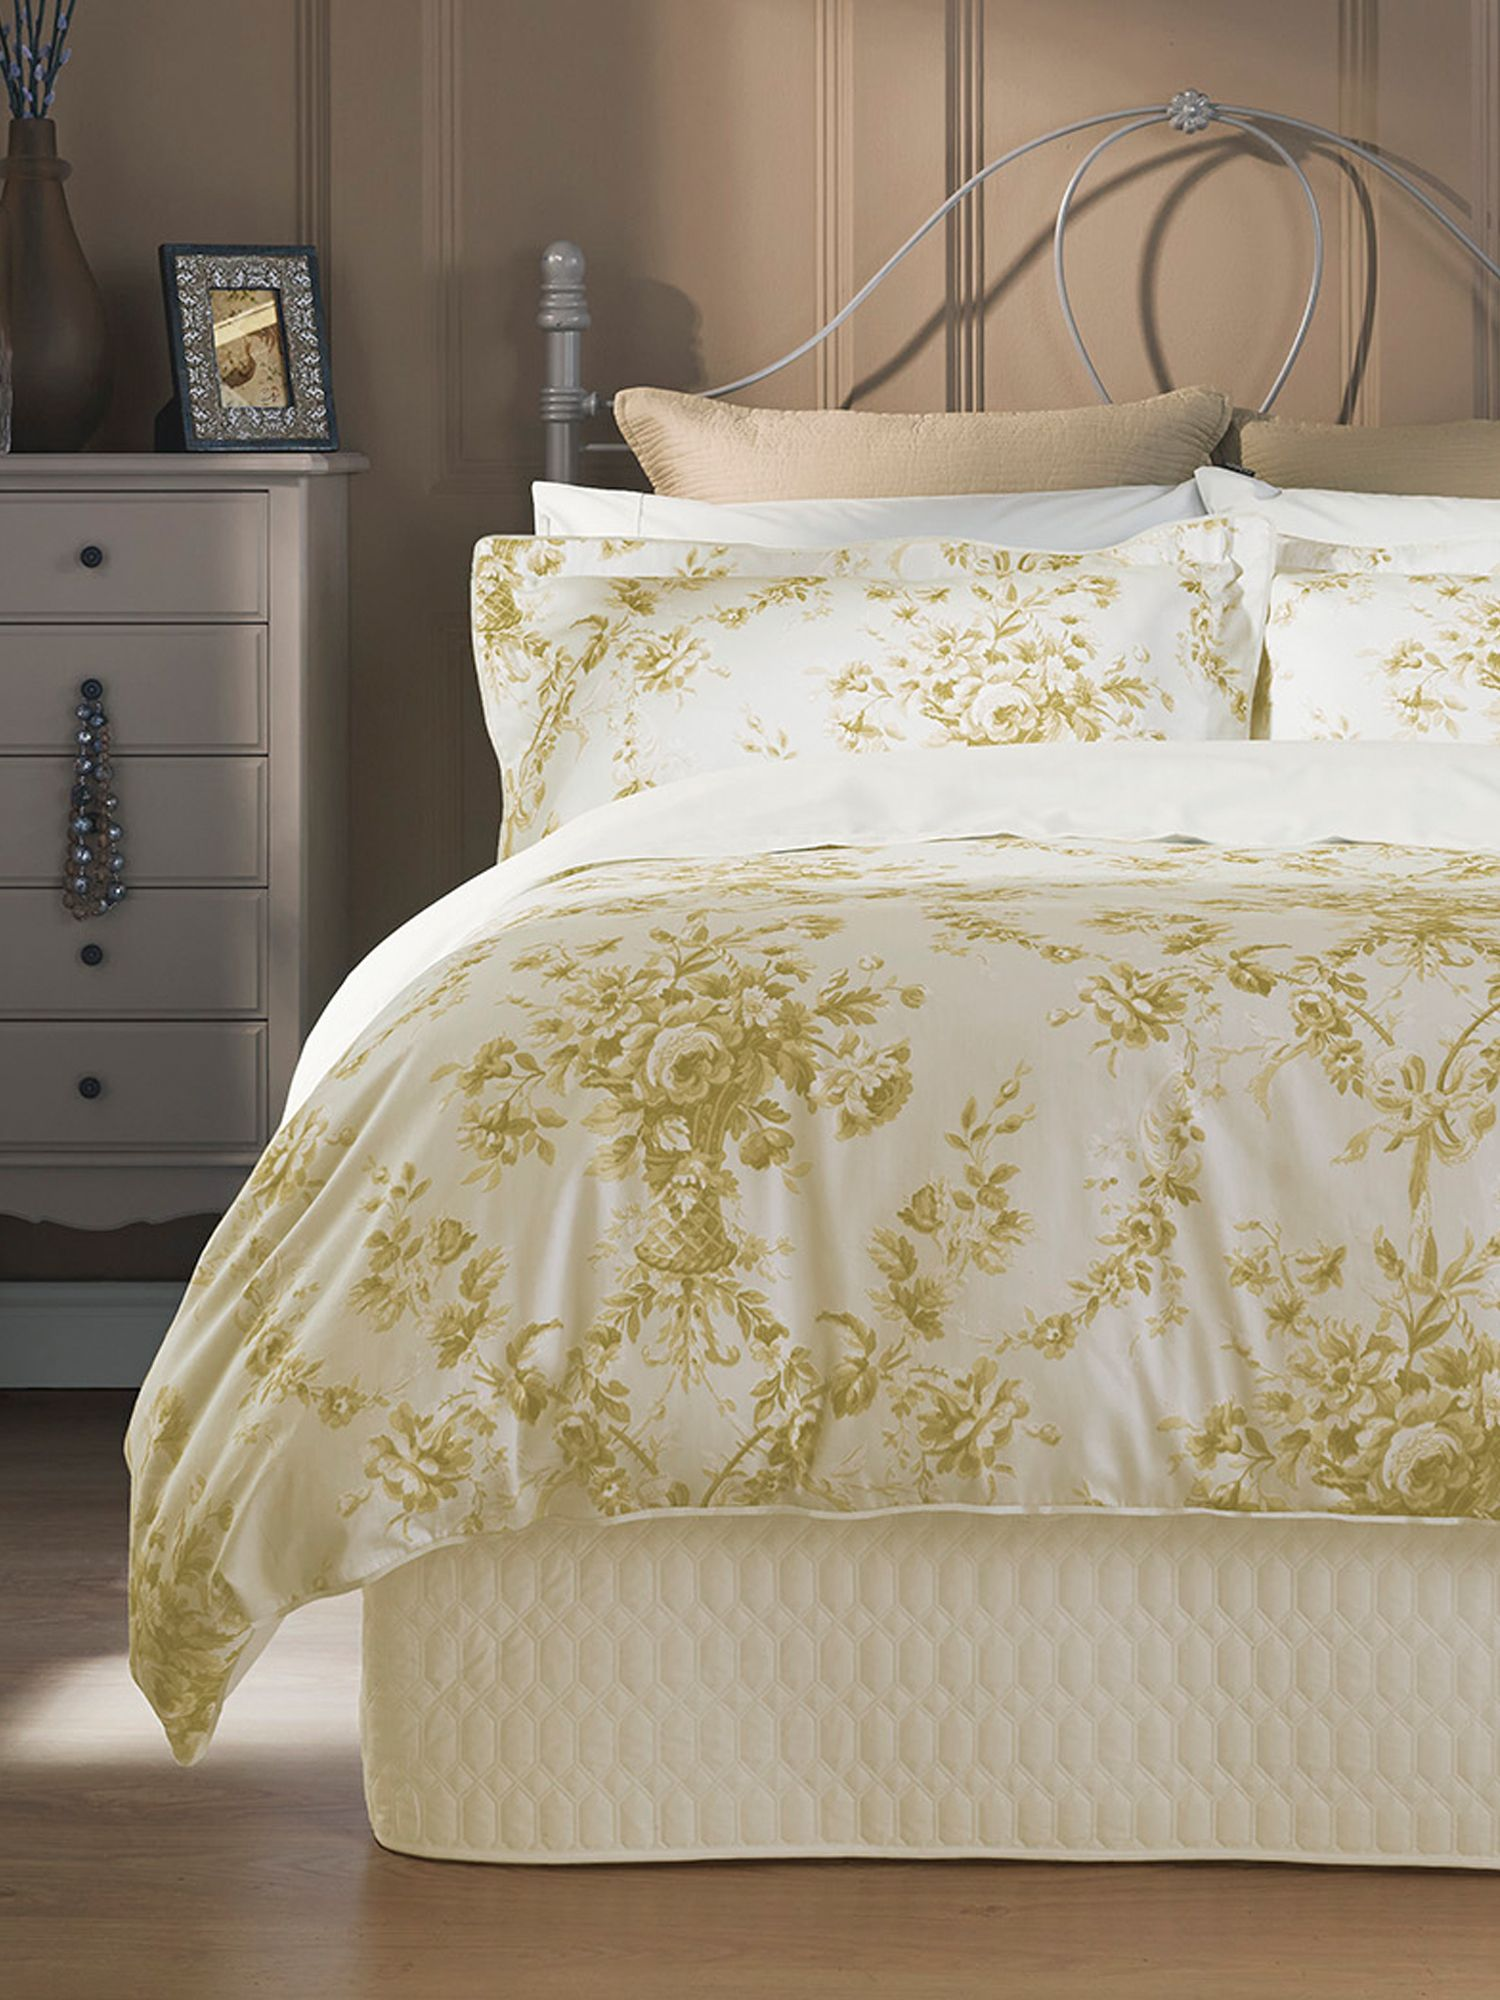 christy toile duvet set